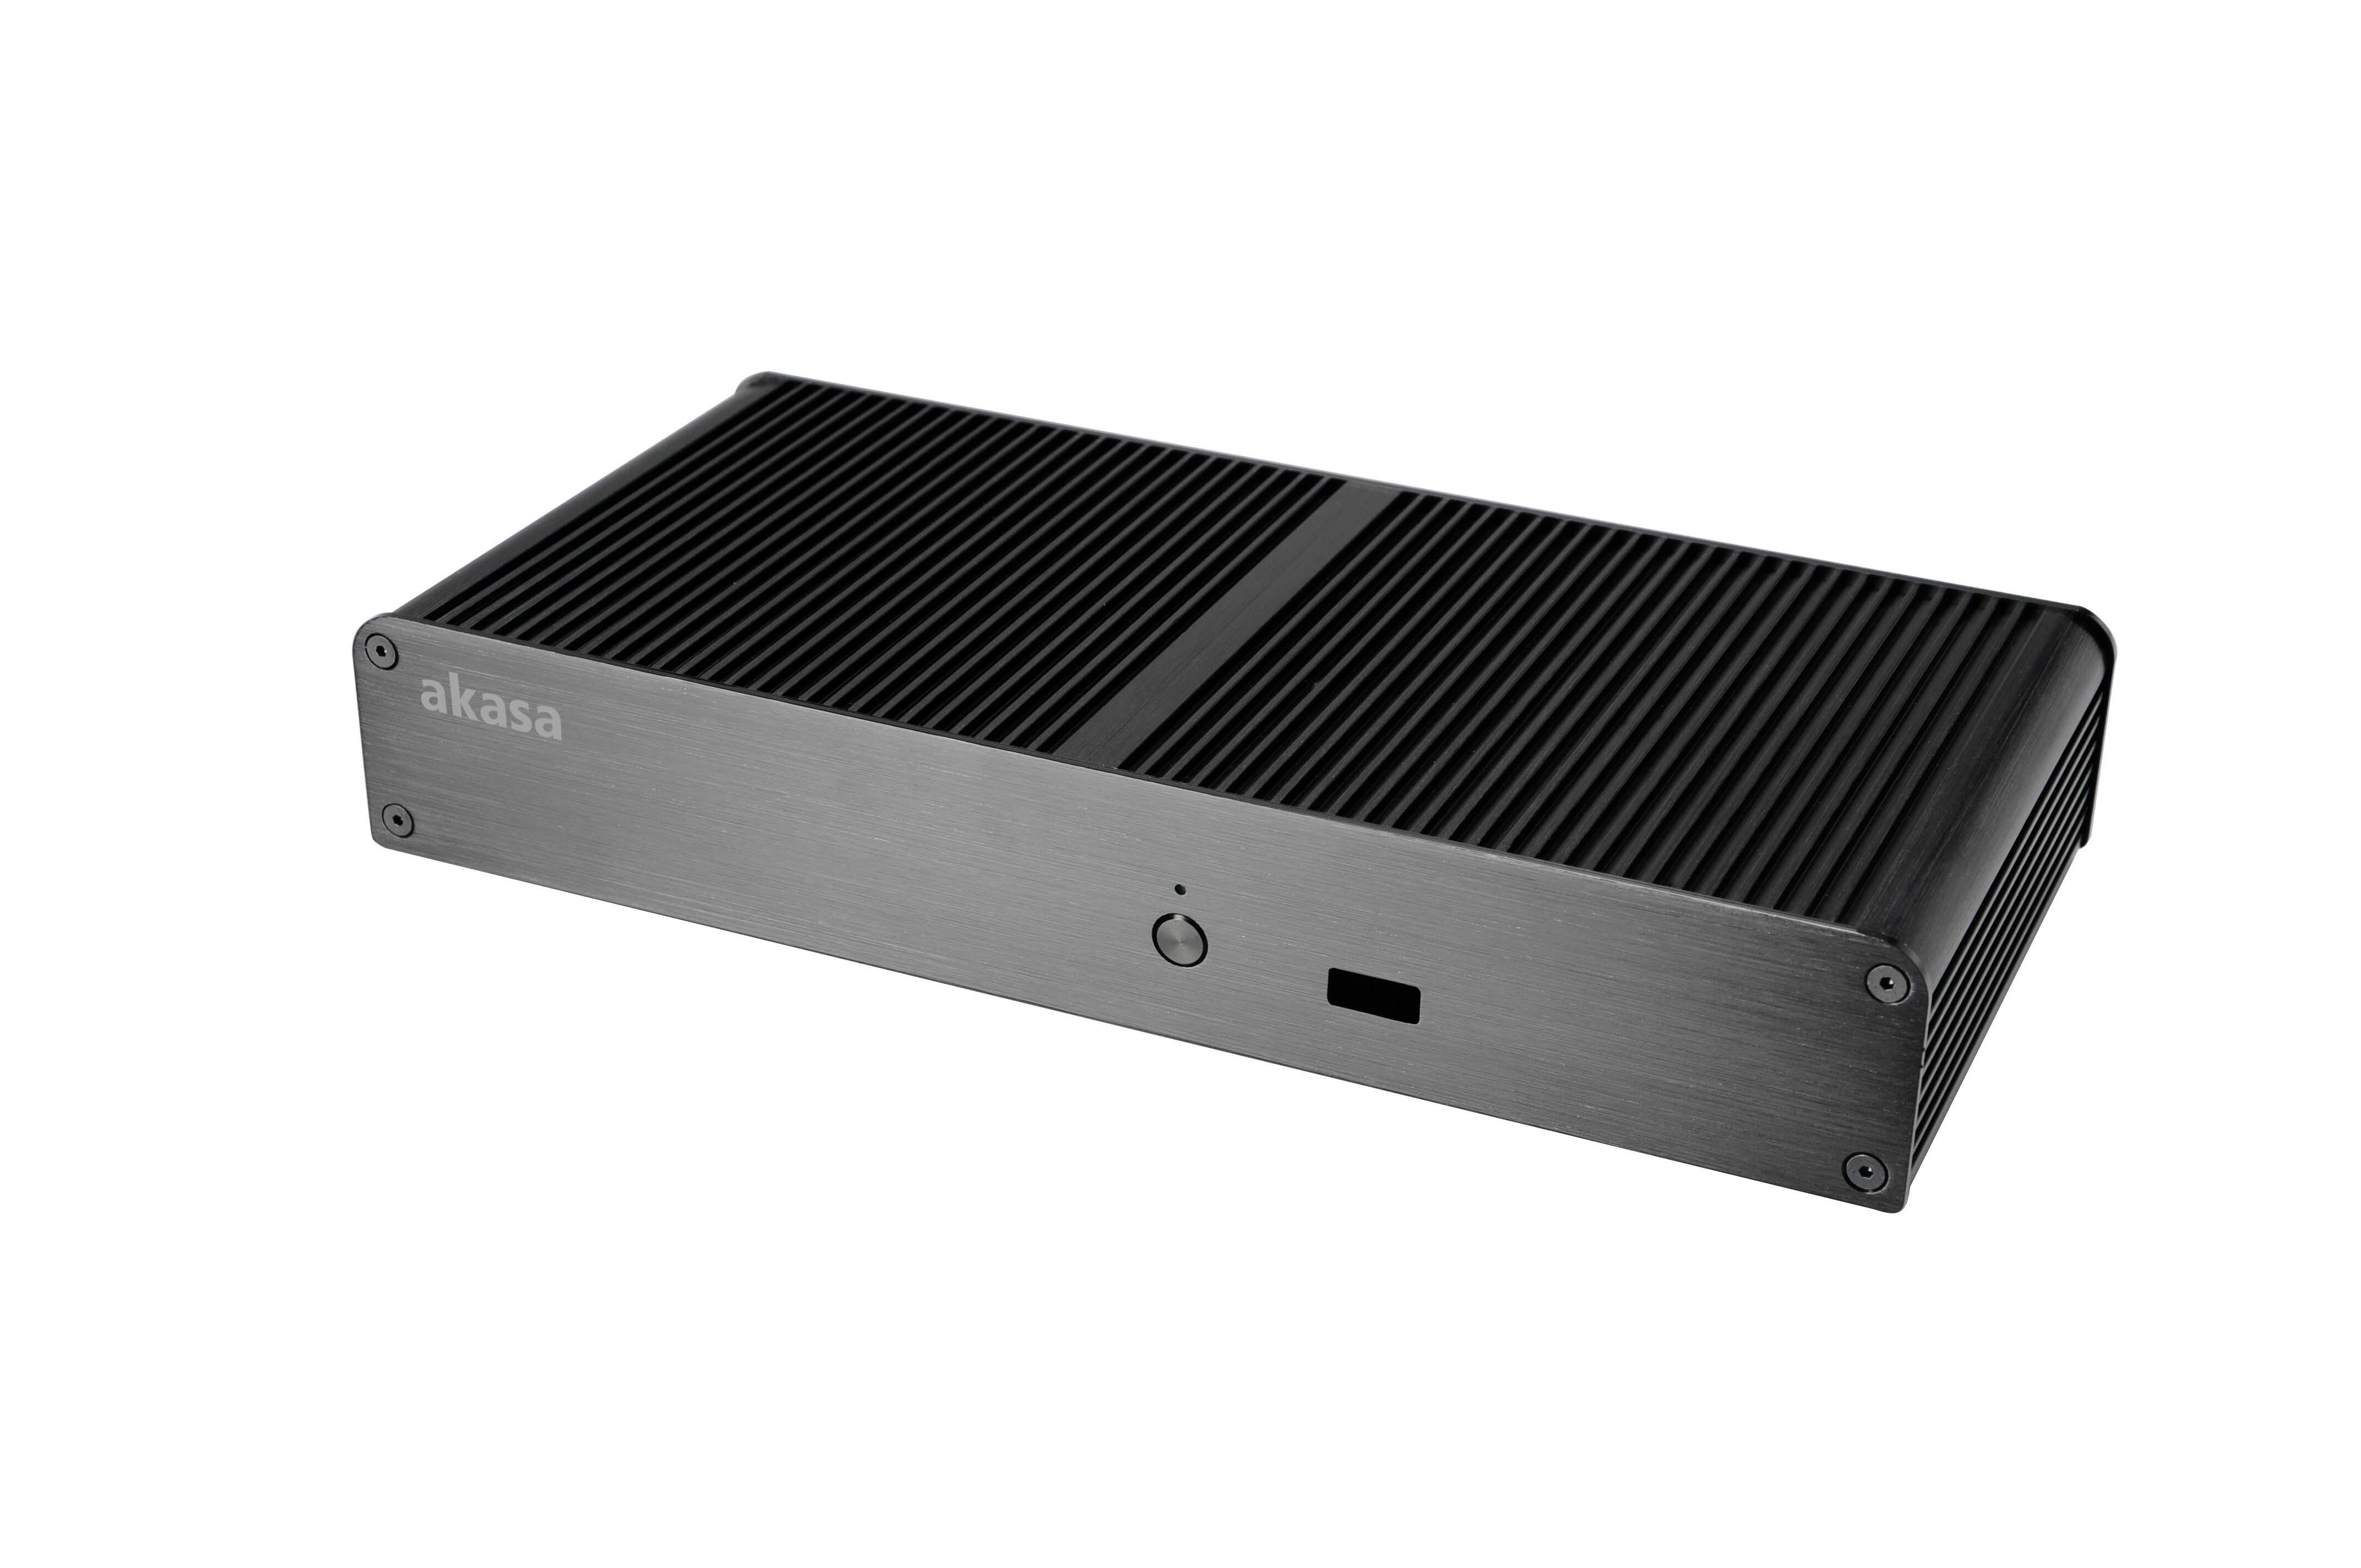 Akasa Tesla T, Fanless solid Ali case for Intel NUC (Board Specific)+2.5 HDD/SSD, VGA, 2xSerial w/ 36W Power Adpt